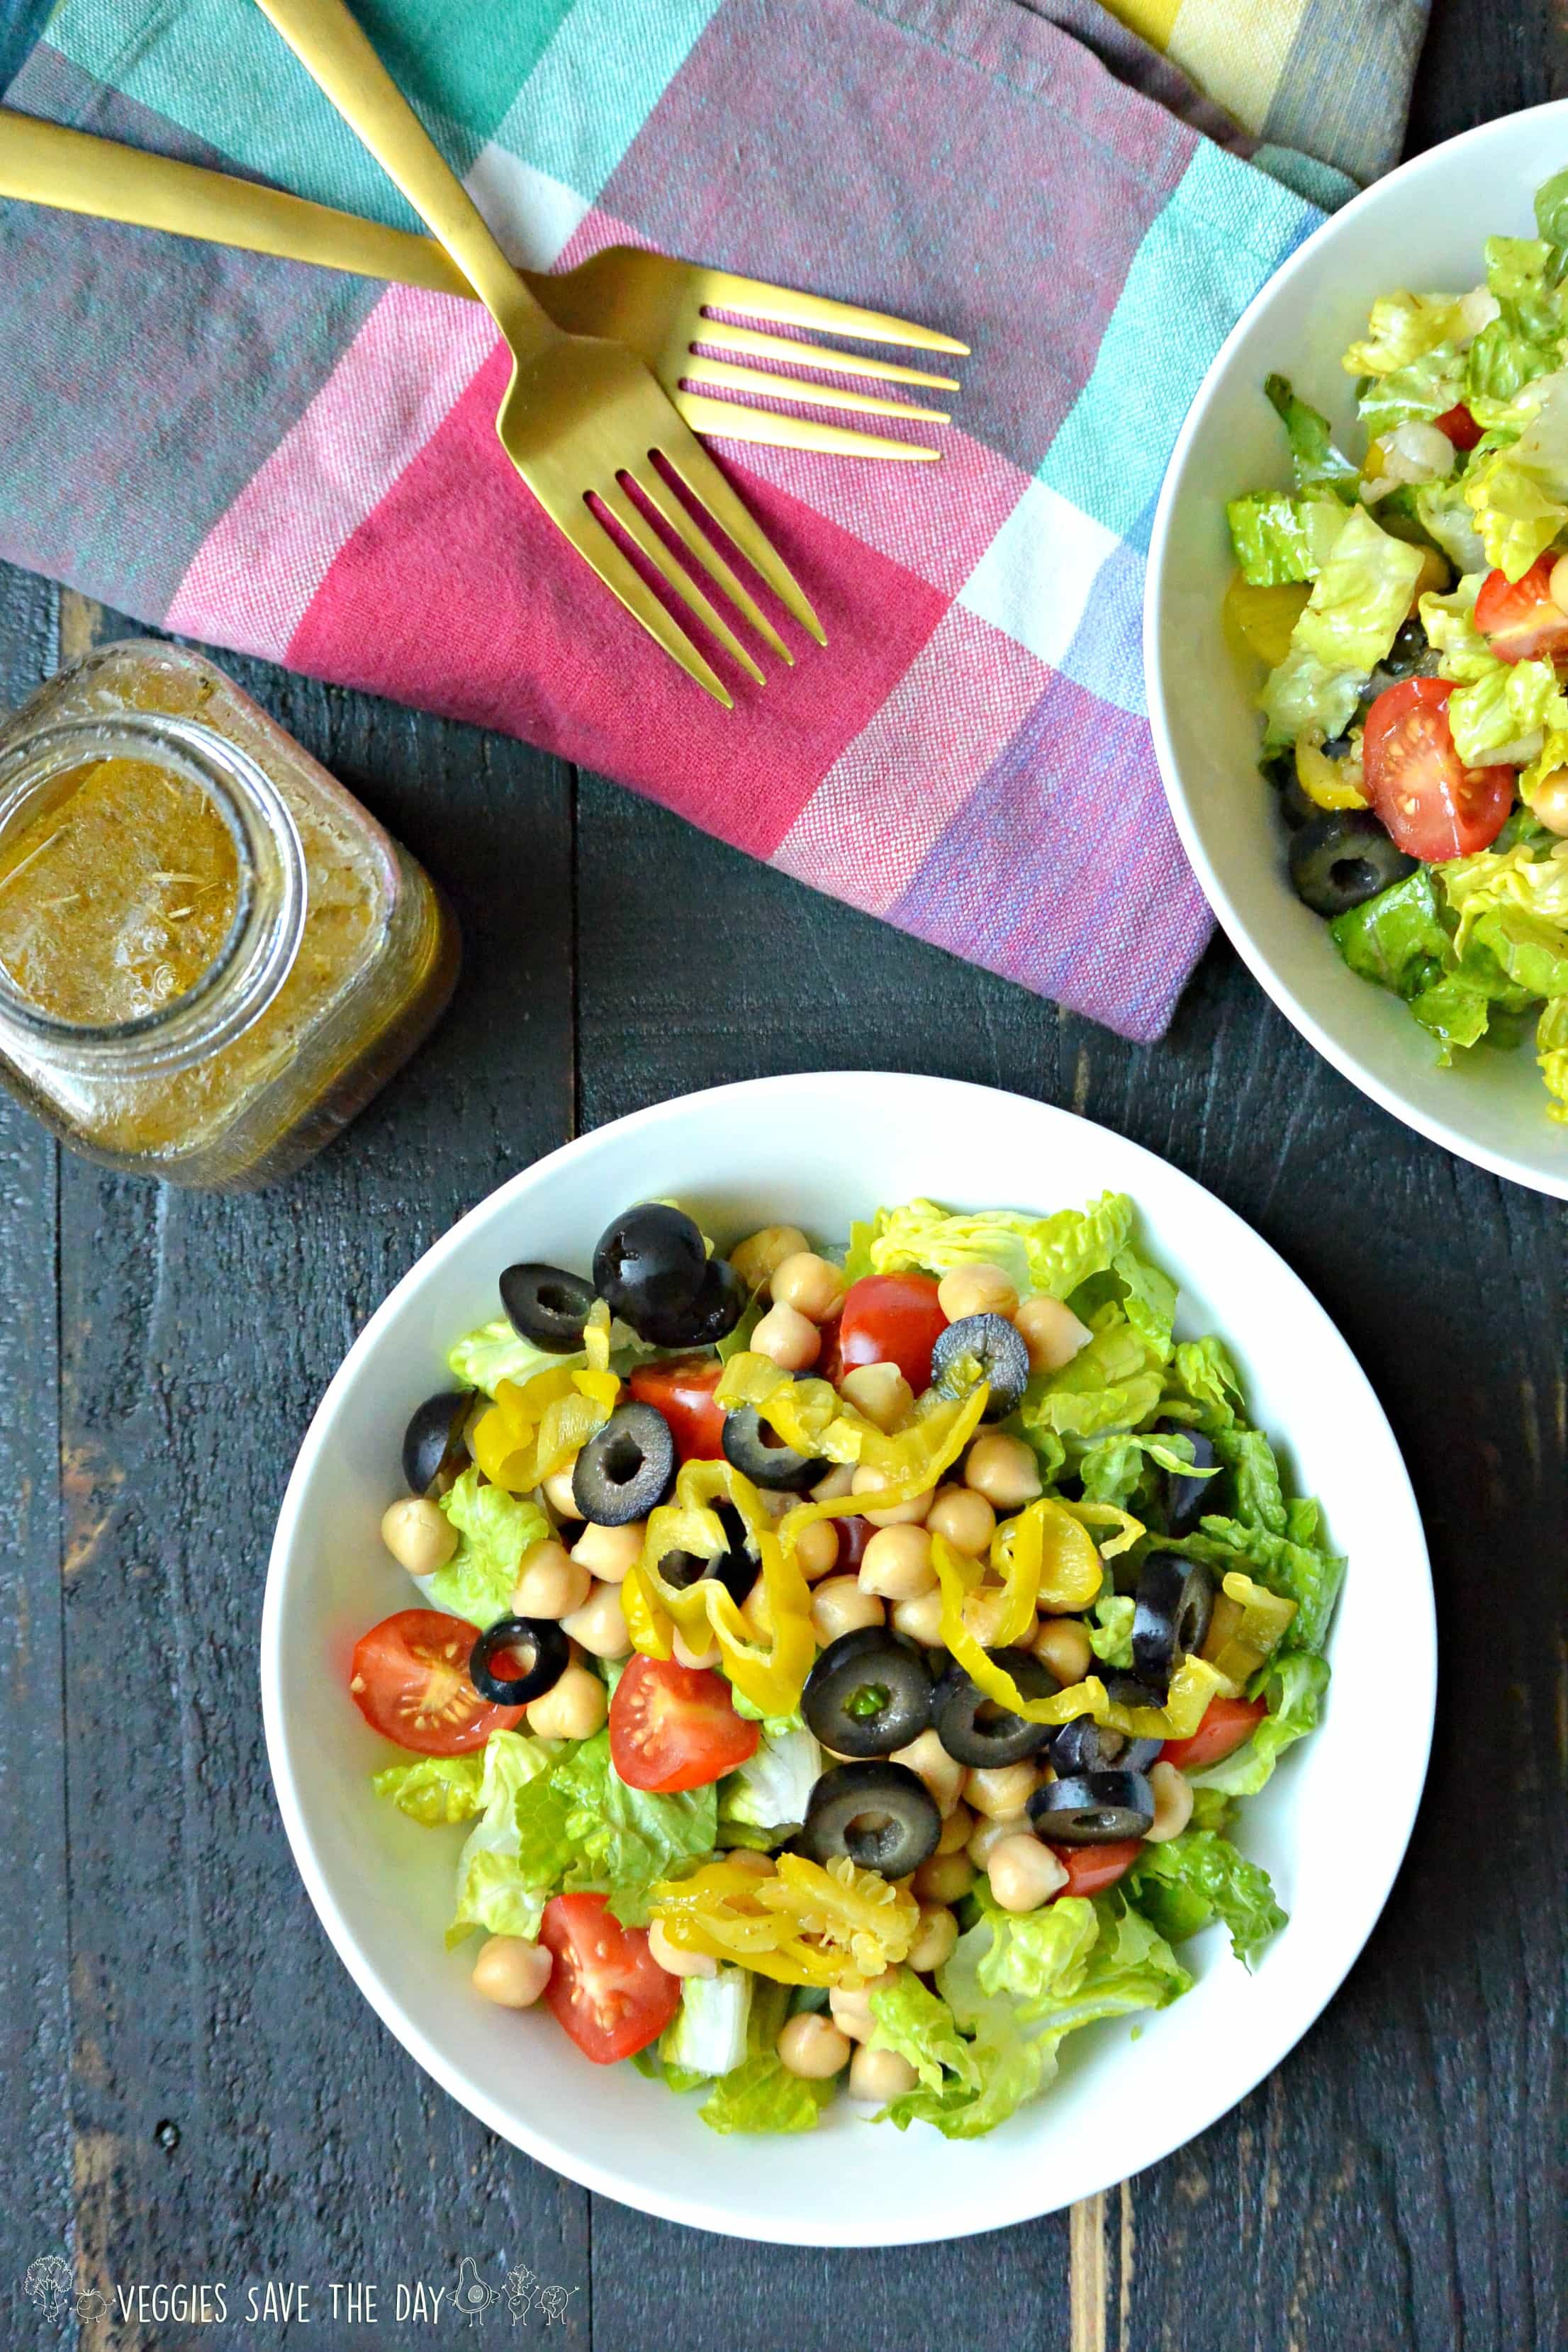 Gluten-Free Vegan Recipes Italian chopped salad